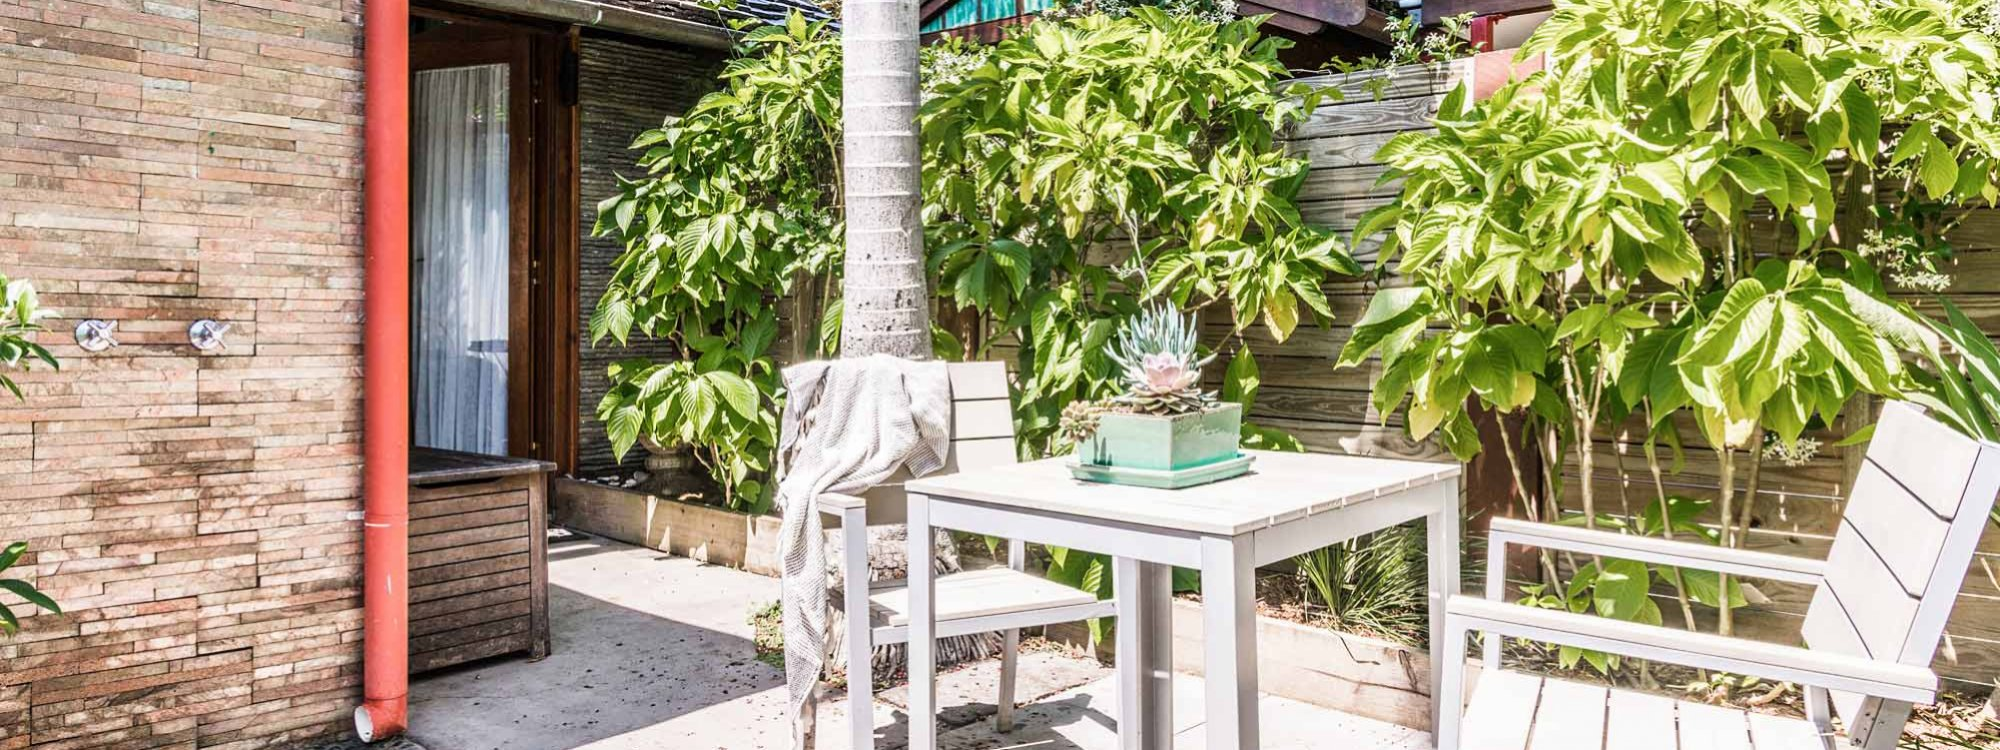 Byron Blisshouse - Byron Bay - Studio - Outdoor Shower and Table Setting